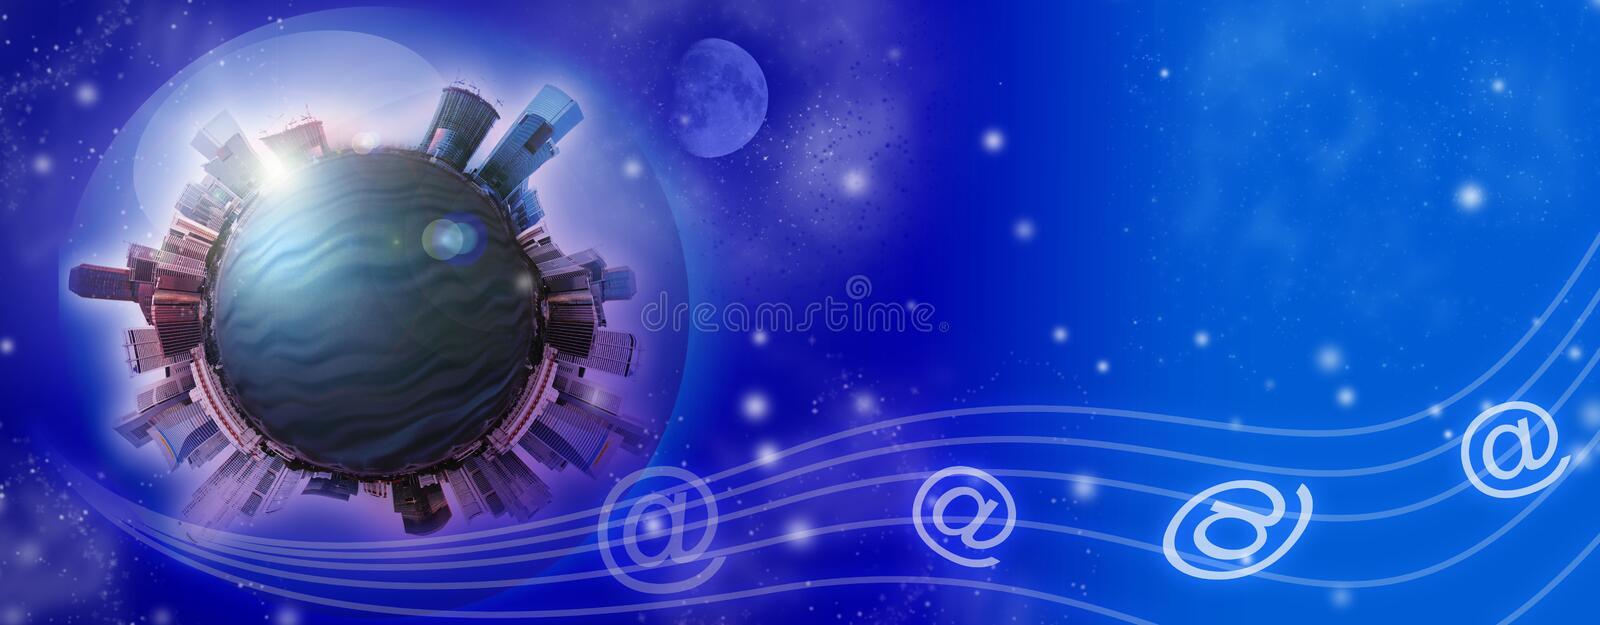 Planet City Royalty Free Stock Images